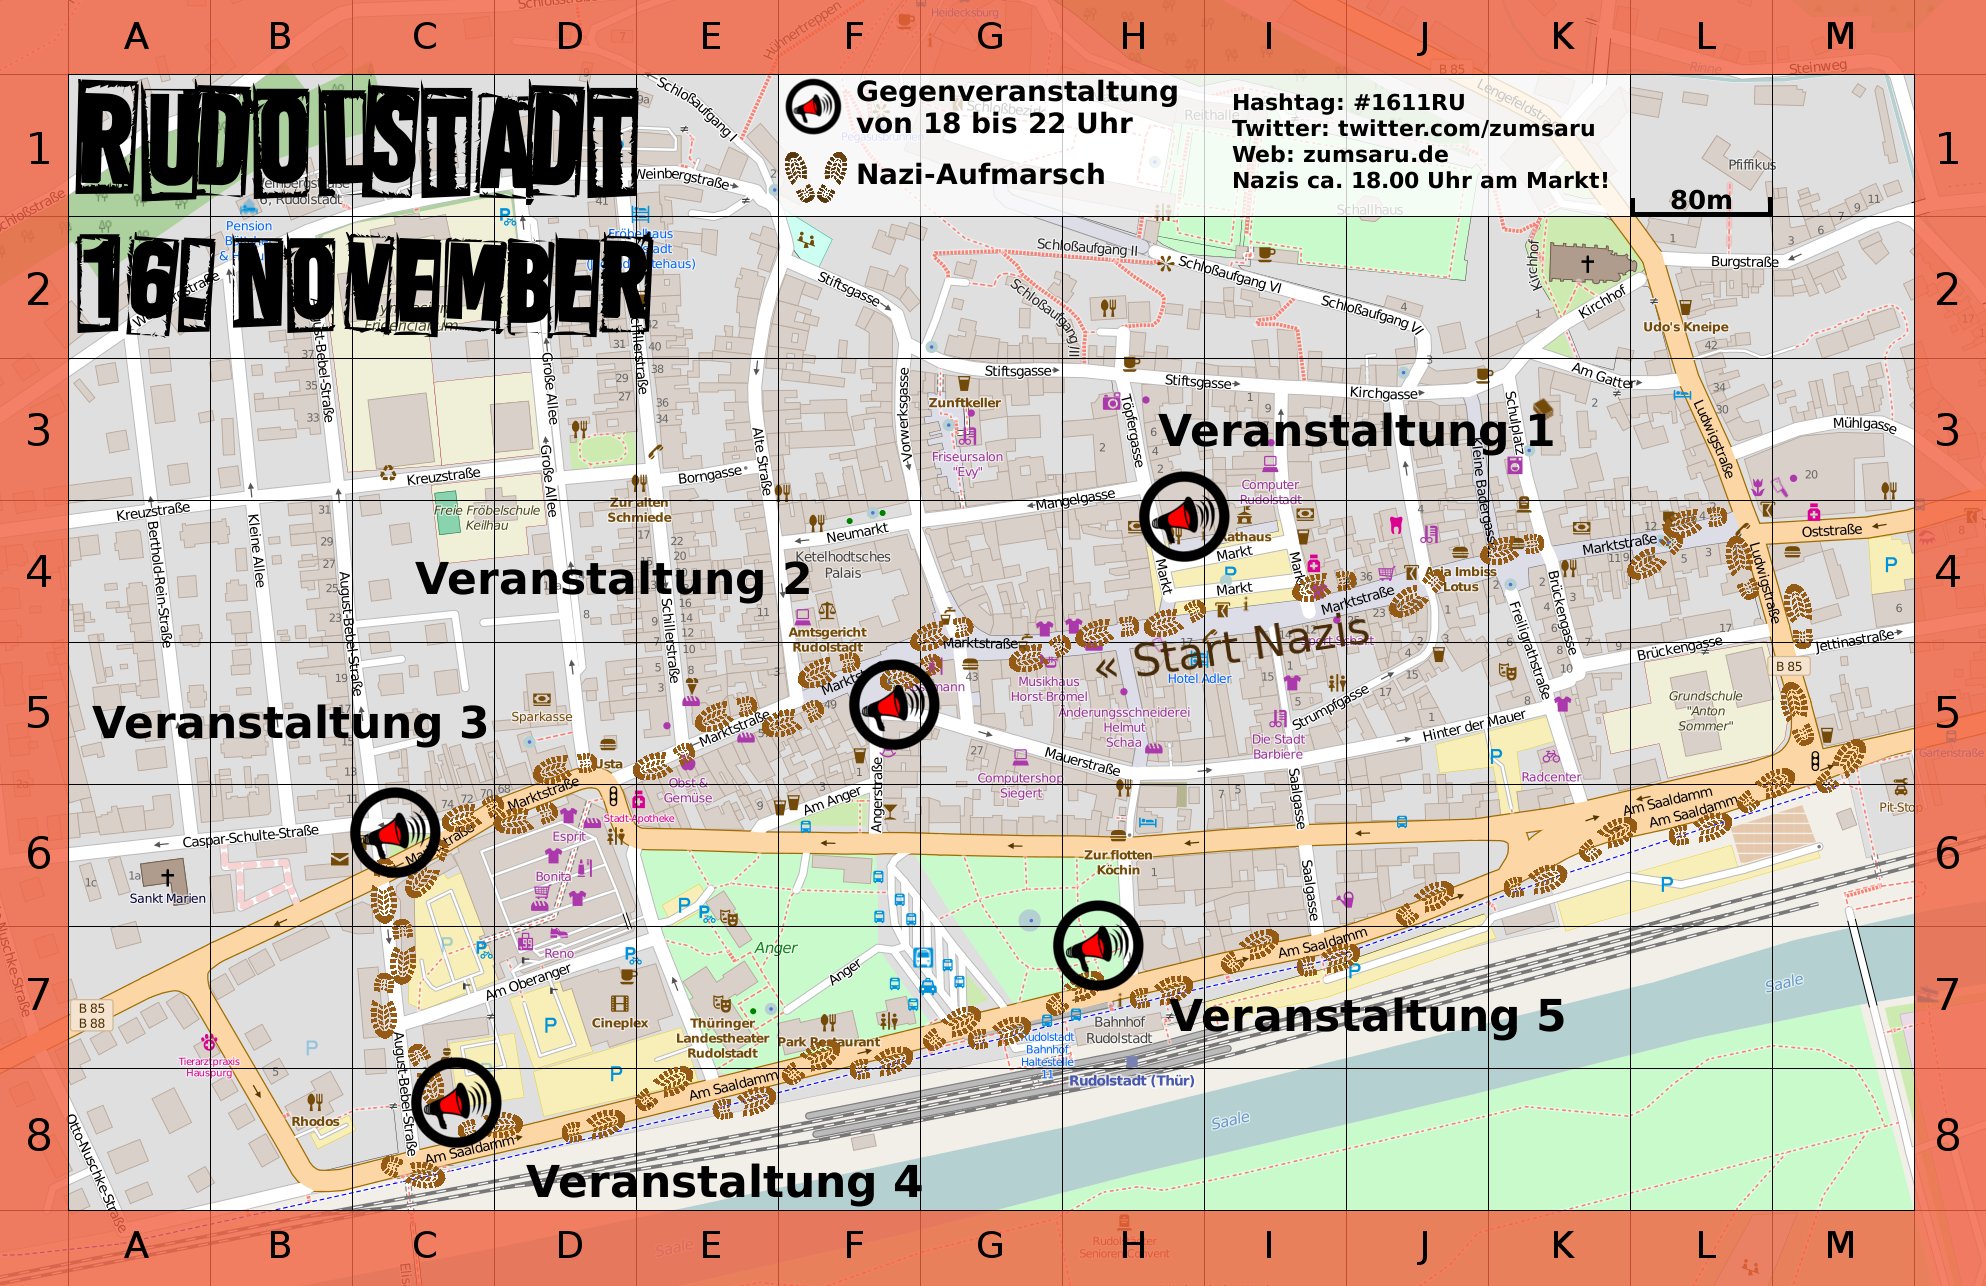 2015-11-15_demo_rudolstadt_map_1-4000_final